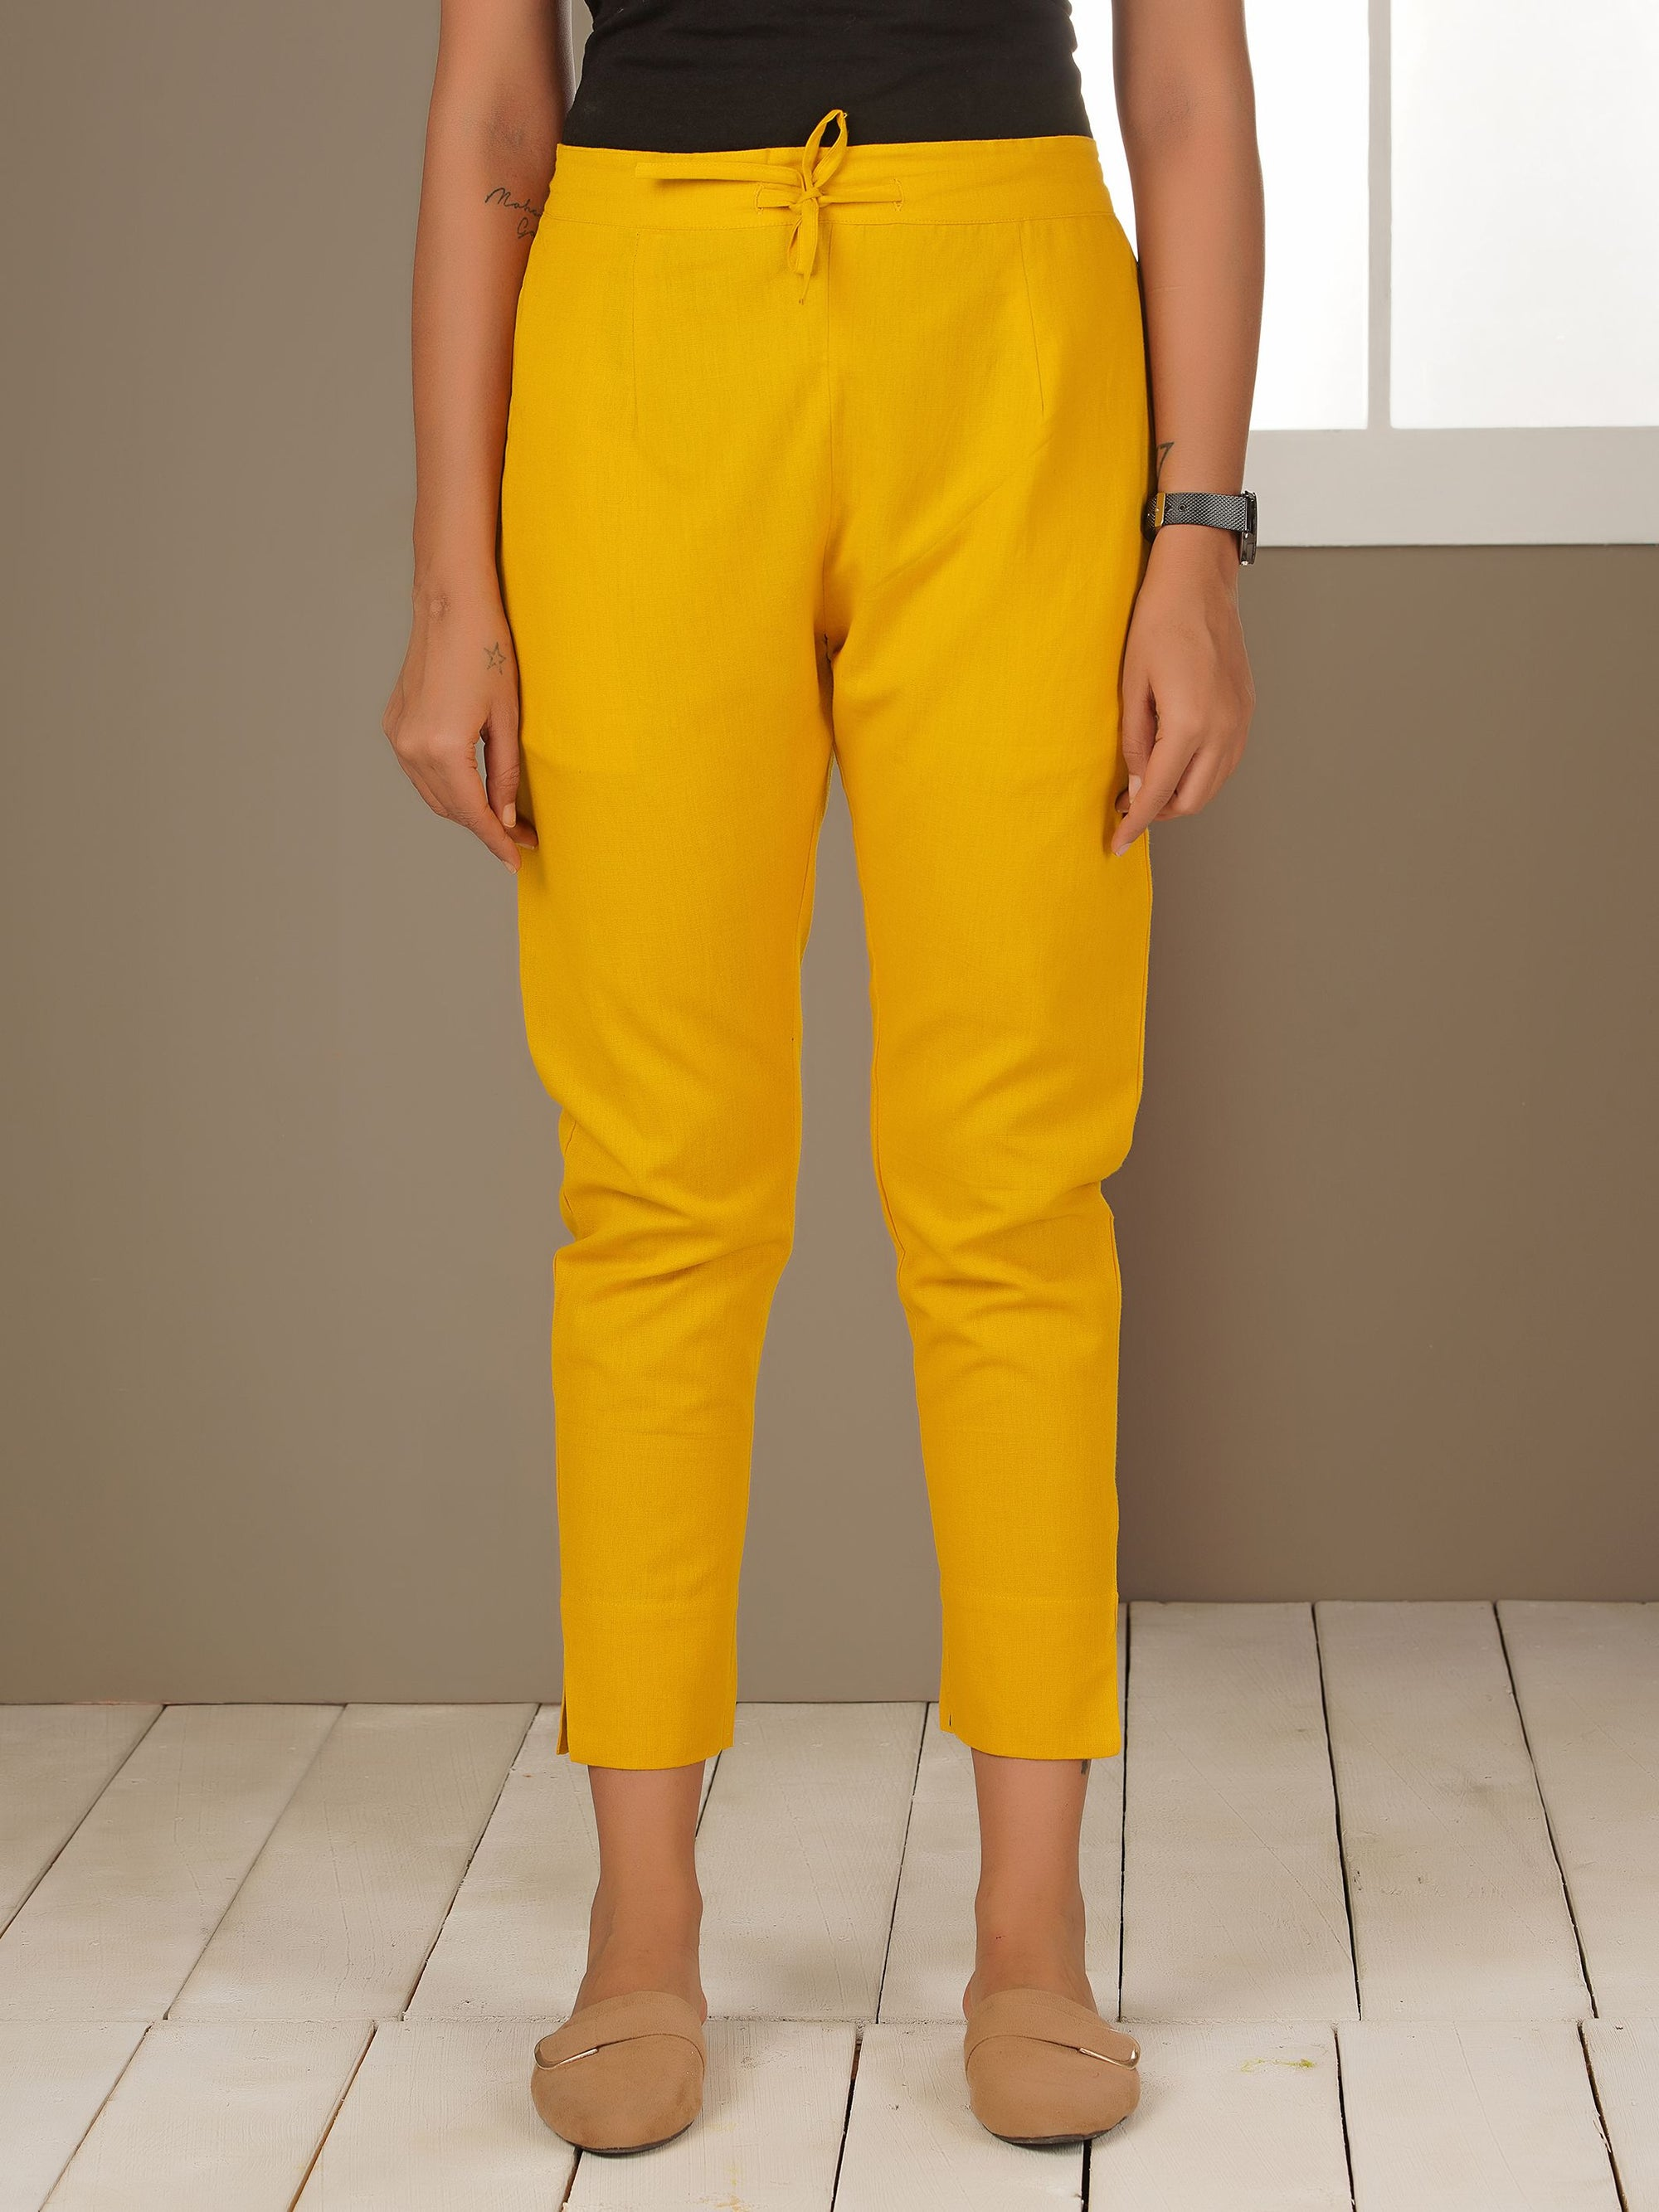 Tapered Cigarette Pants - Mustard Yellow